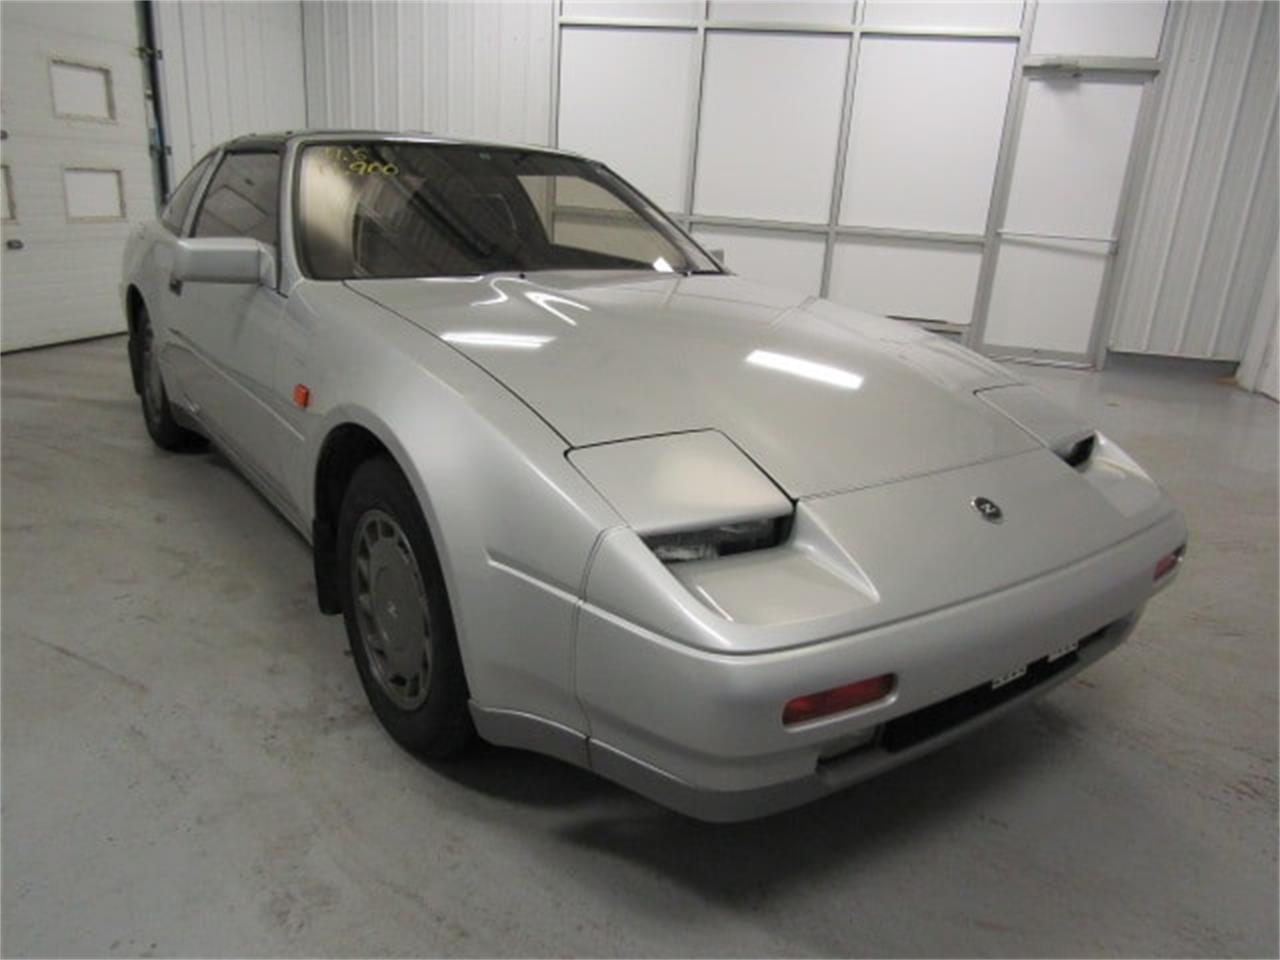 1989 Nissan Fairlady for sale in Christiansburg, VA – photo 3